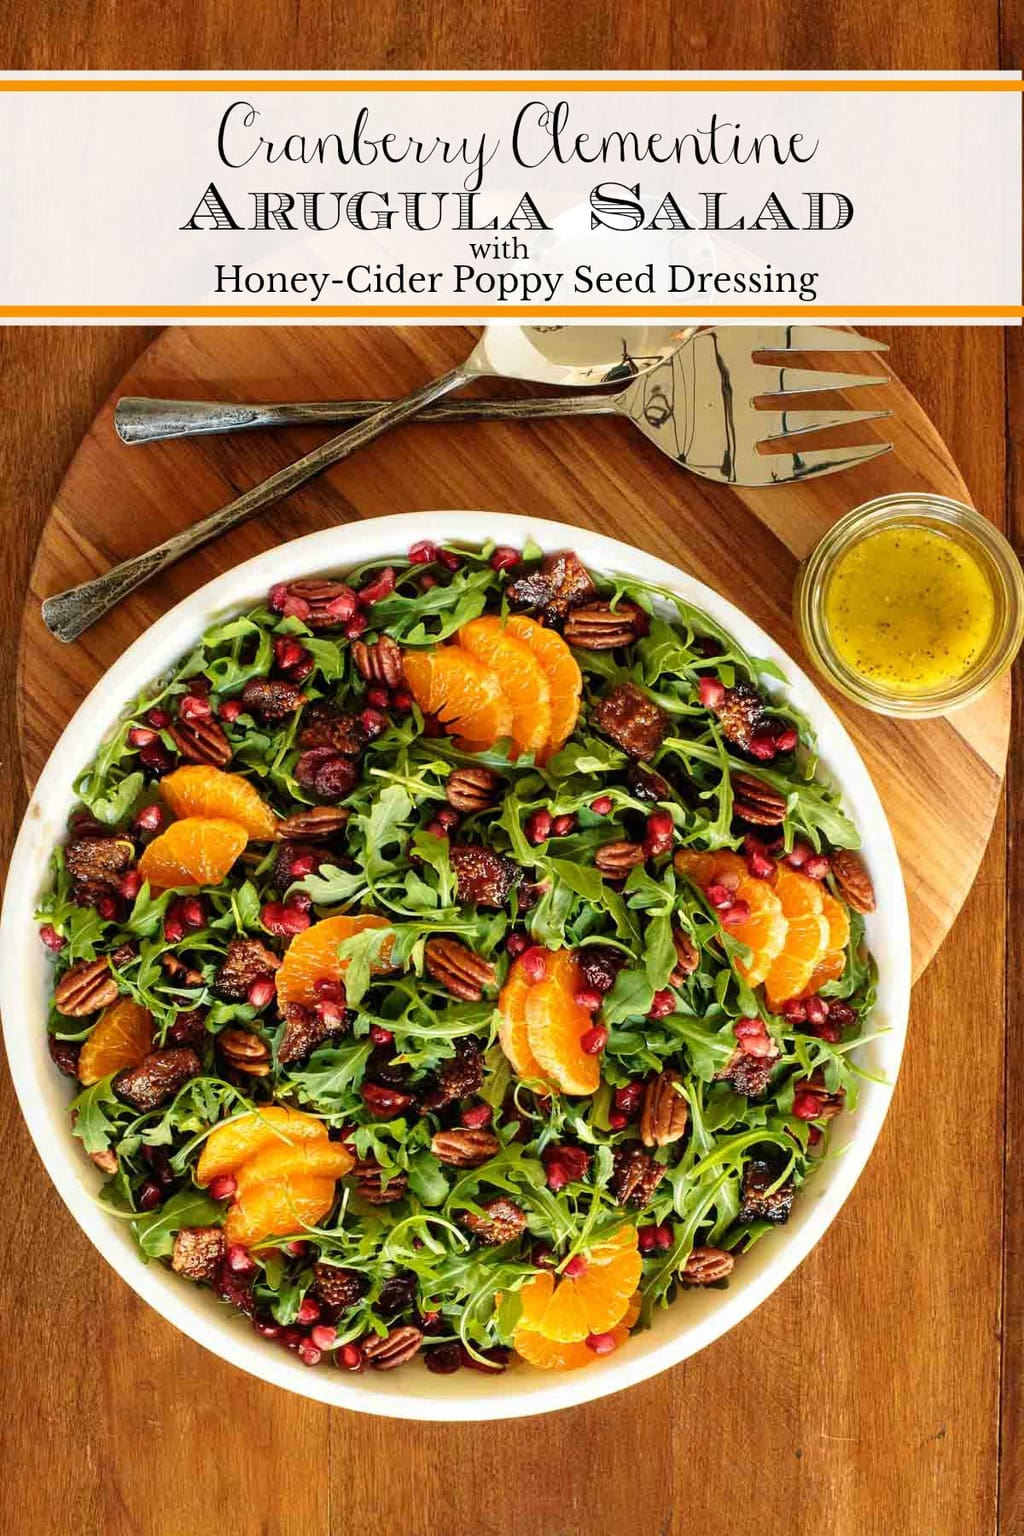 This Cranberry Clementine Arugula Salad also includes butter-toasted pecans, candied bacon, ruby-red pomegranate seeds and a delicious Honey-Cider Dressing. #arugulasalad, #arugulaclementinesalad, #fallsalad, #holidaysaiad, #Christmassalad